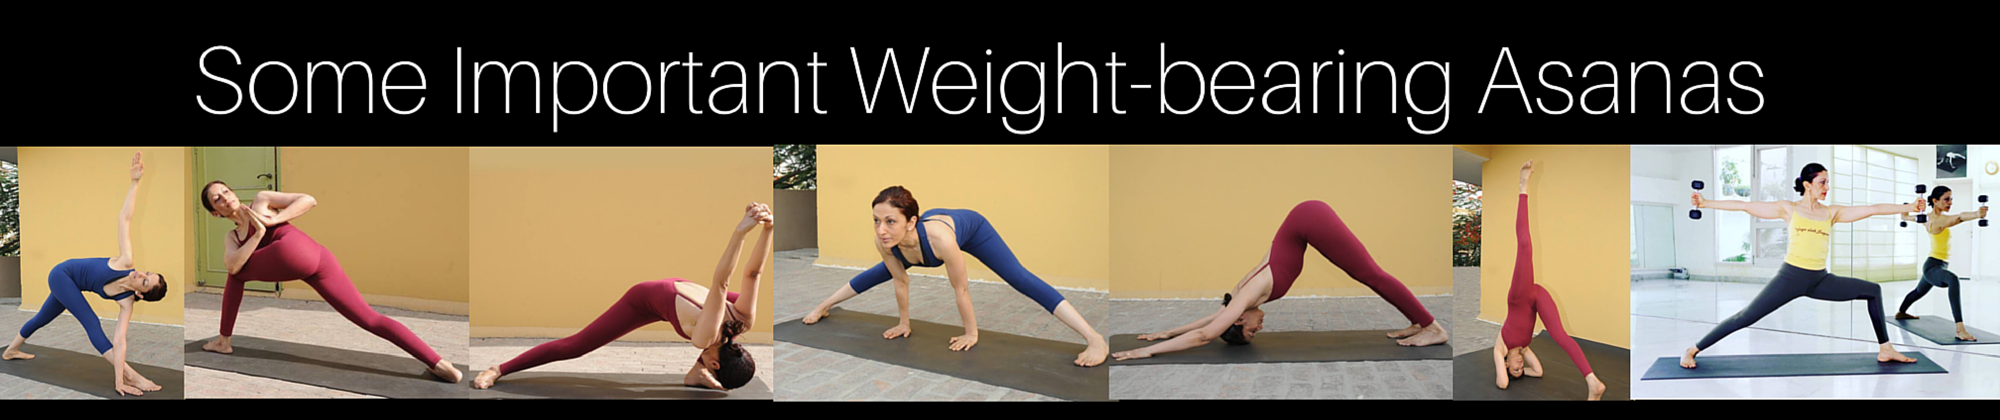 some important weight bearing asanas